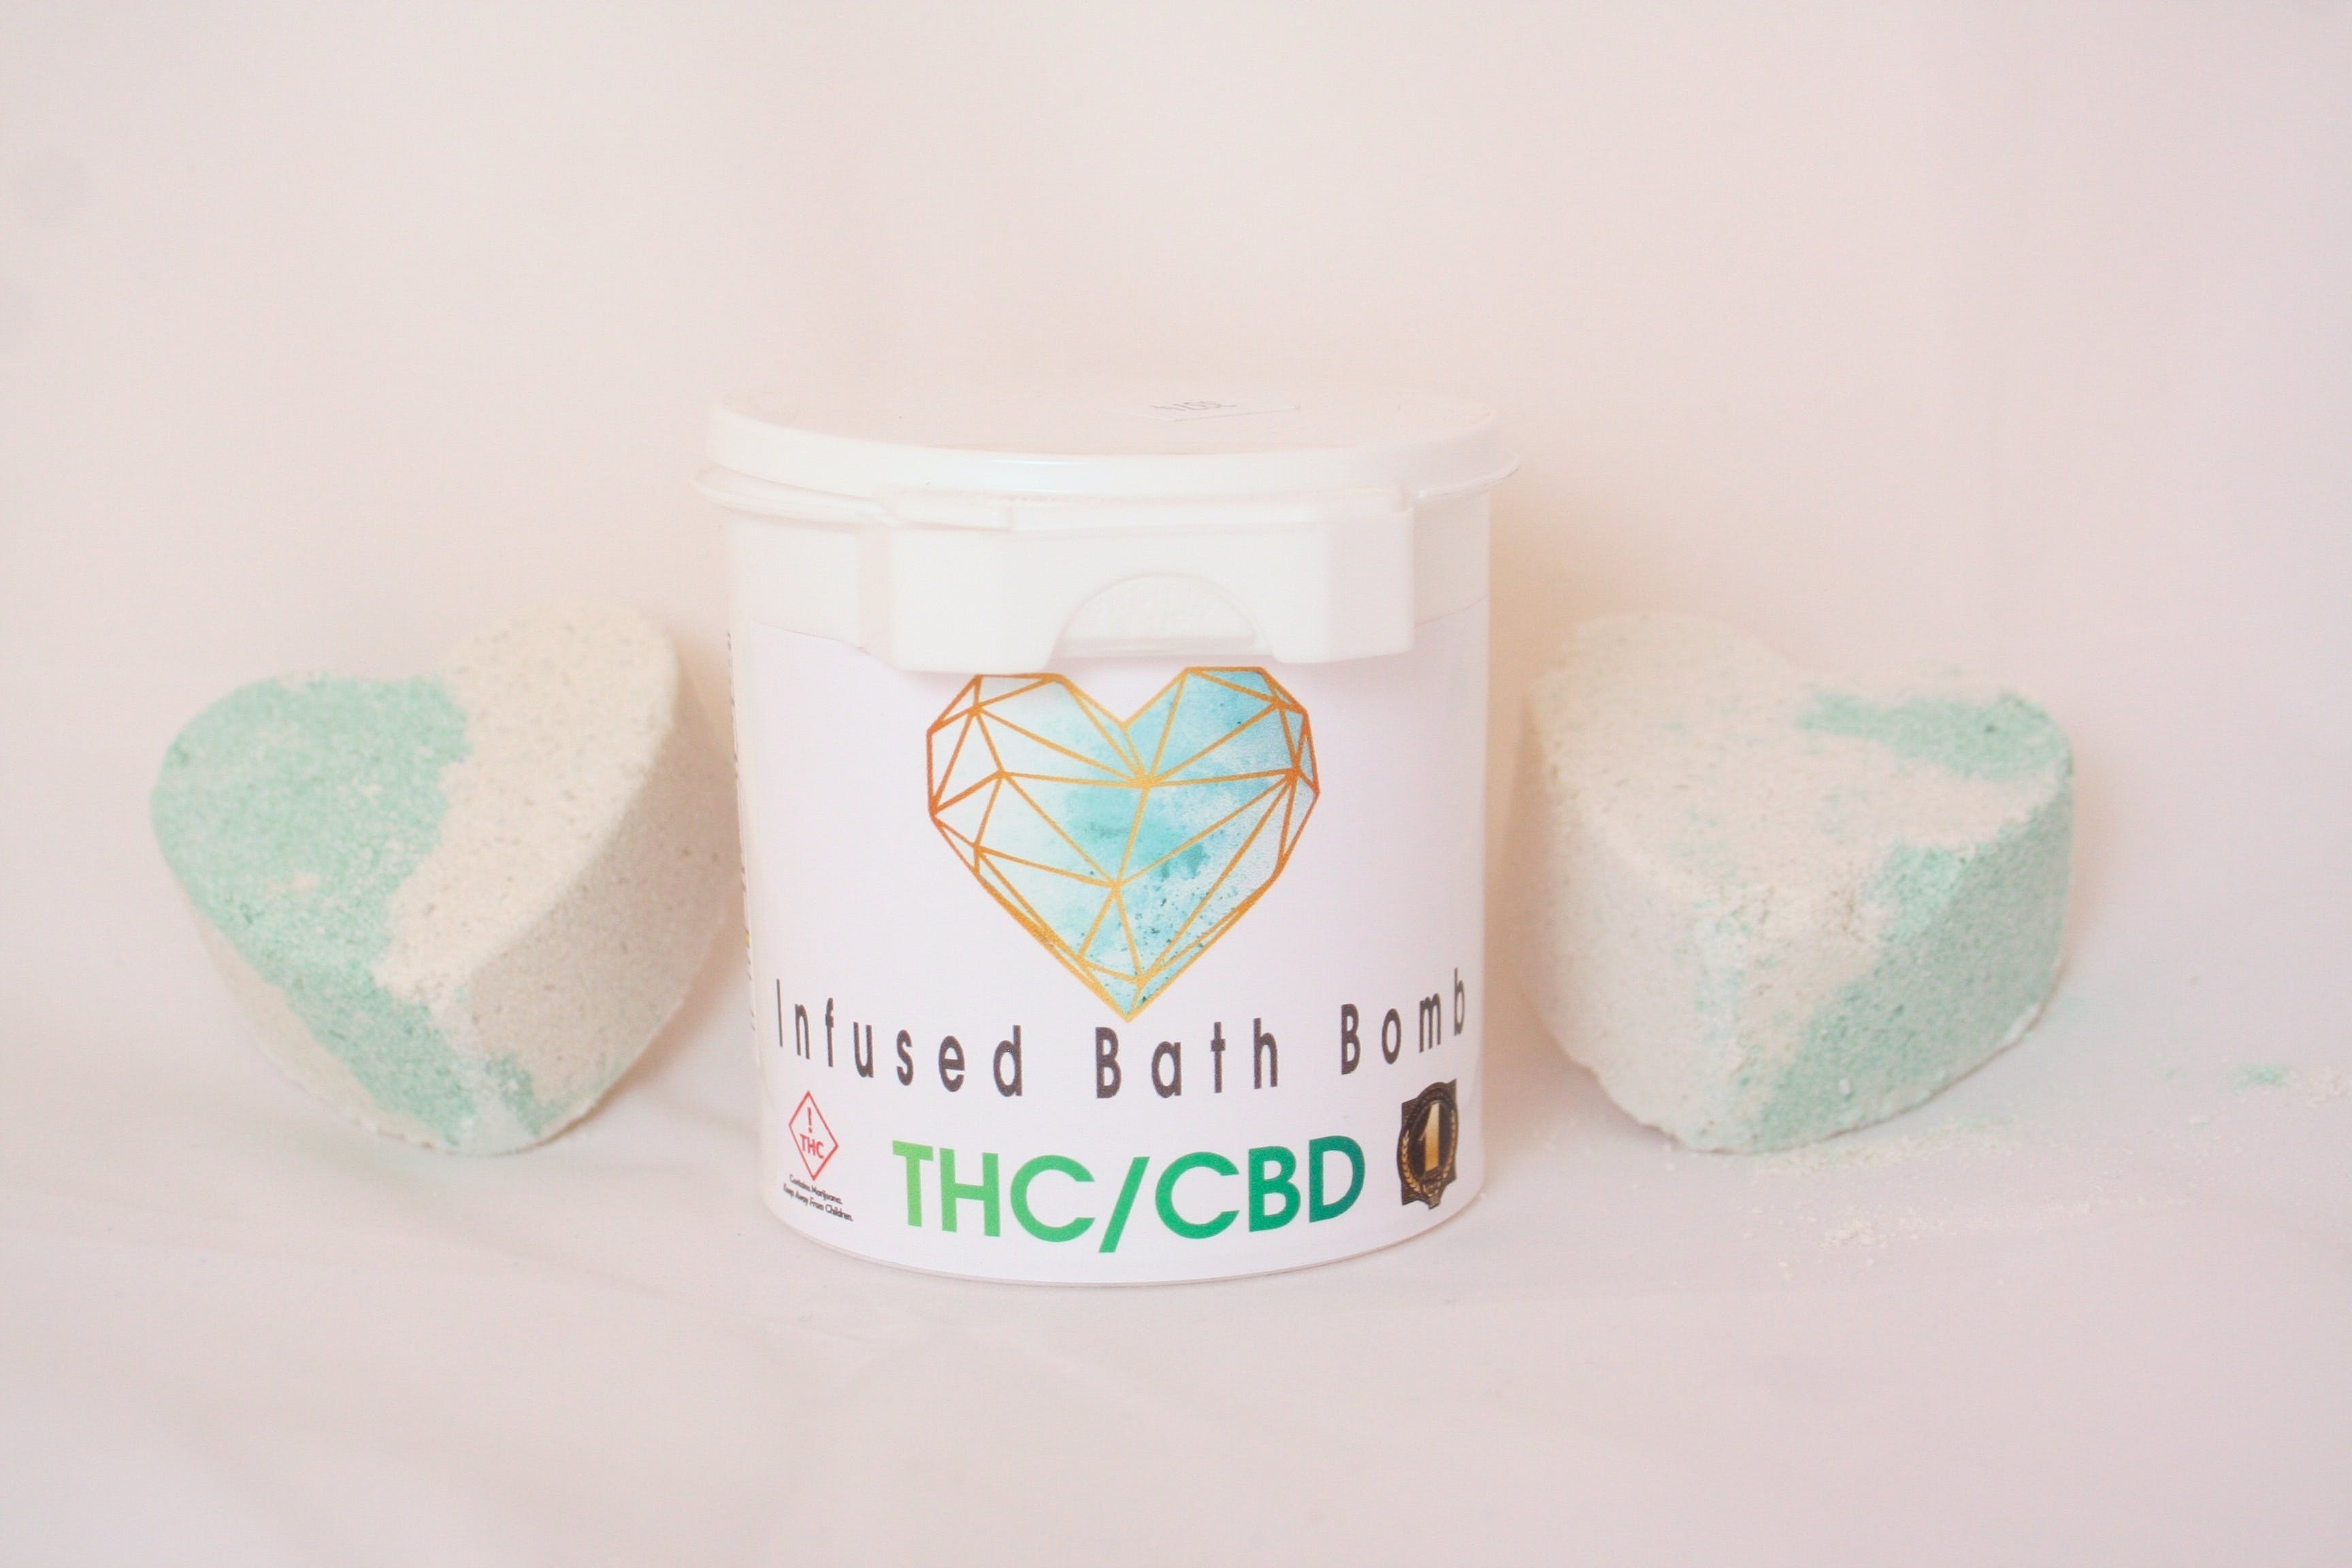 topicals-bath-bombs-100mg-relief